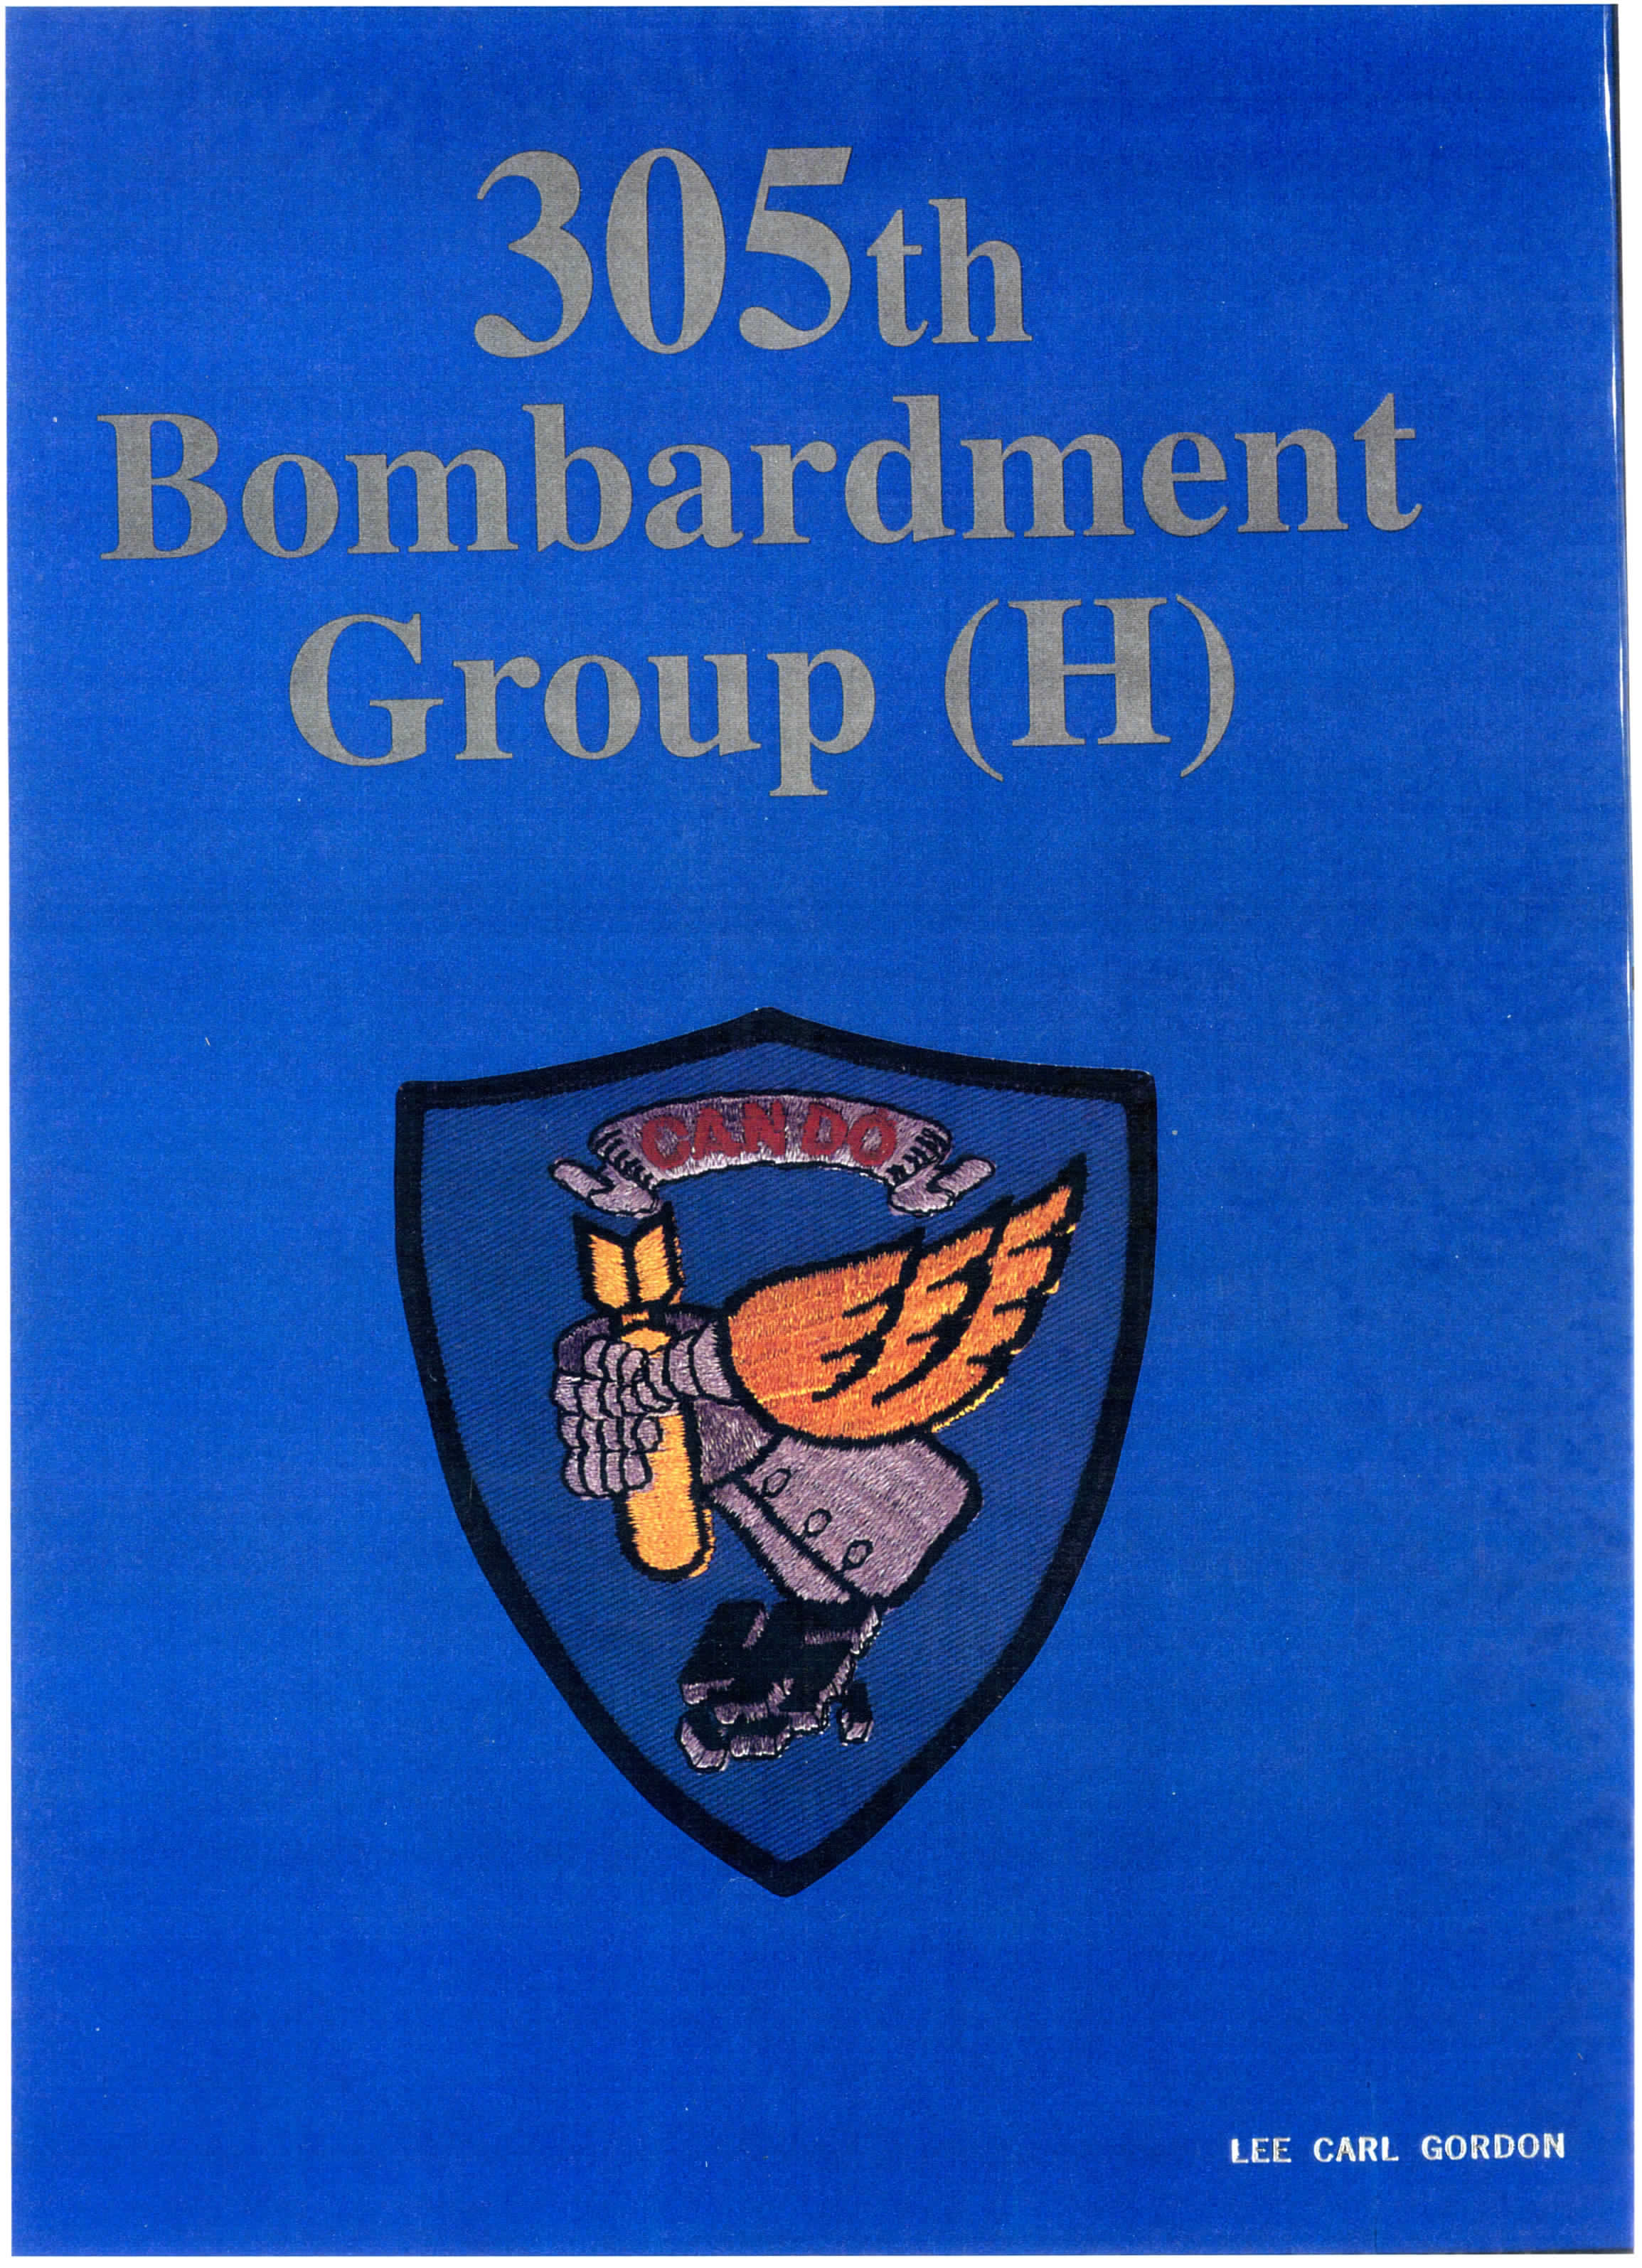 305th-Bombardment_Cover001.jpg